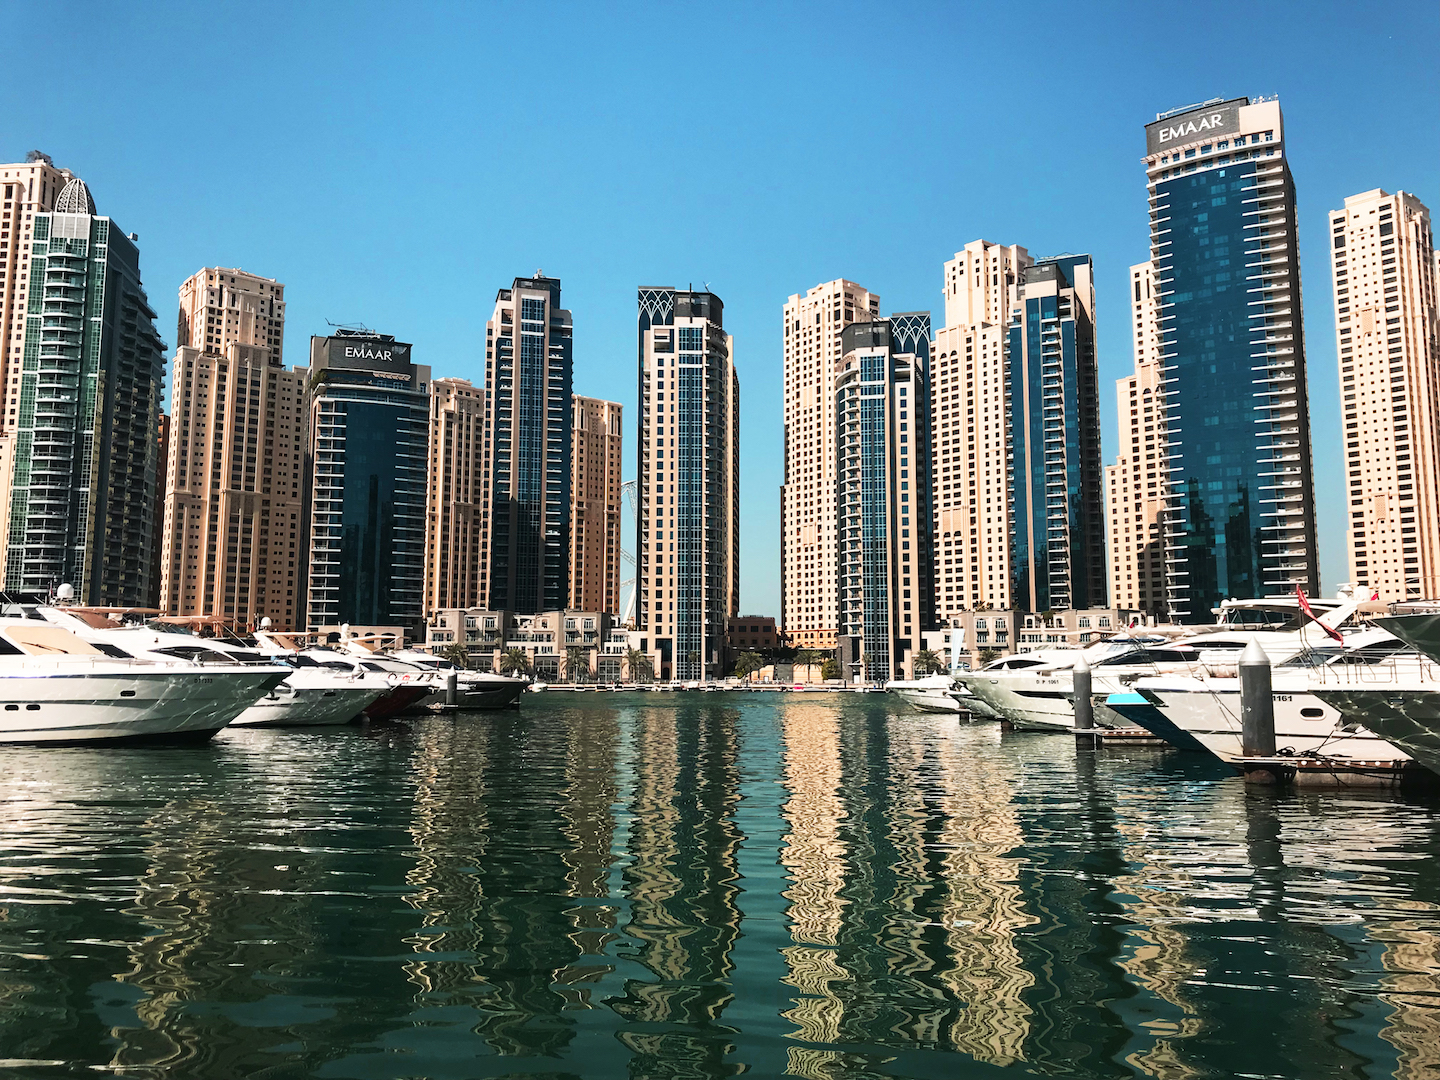 Yacht rental Dubai CharterClick for boat cruises in Dubai